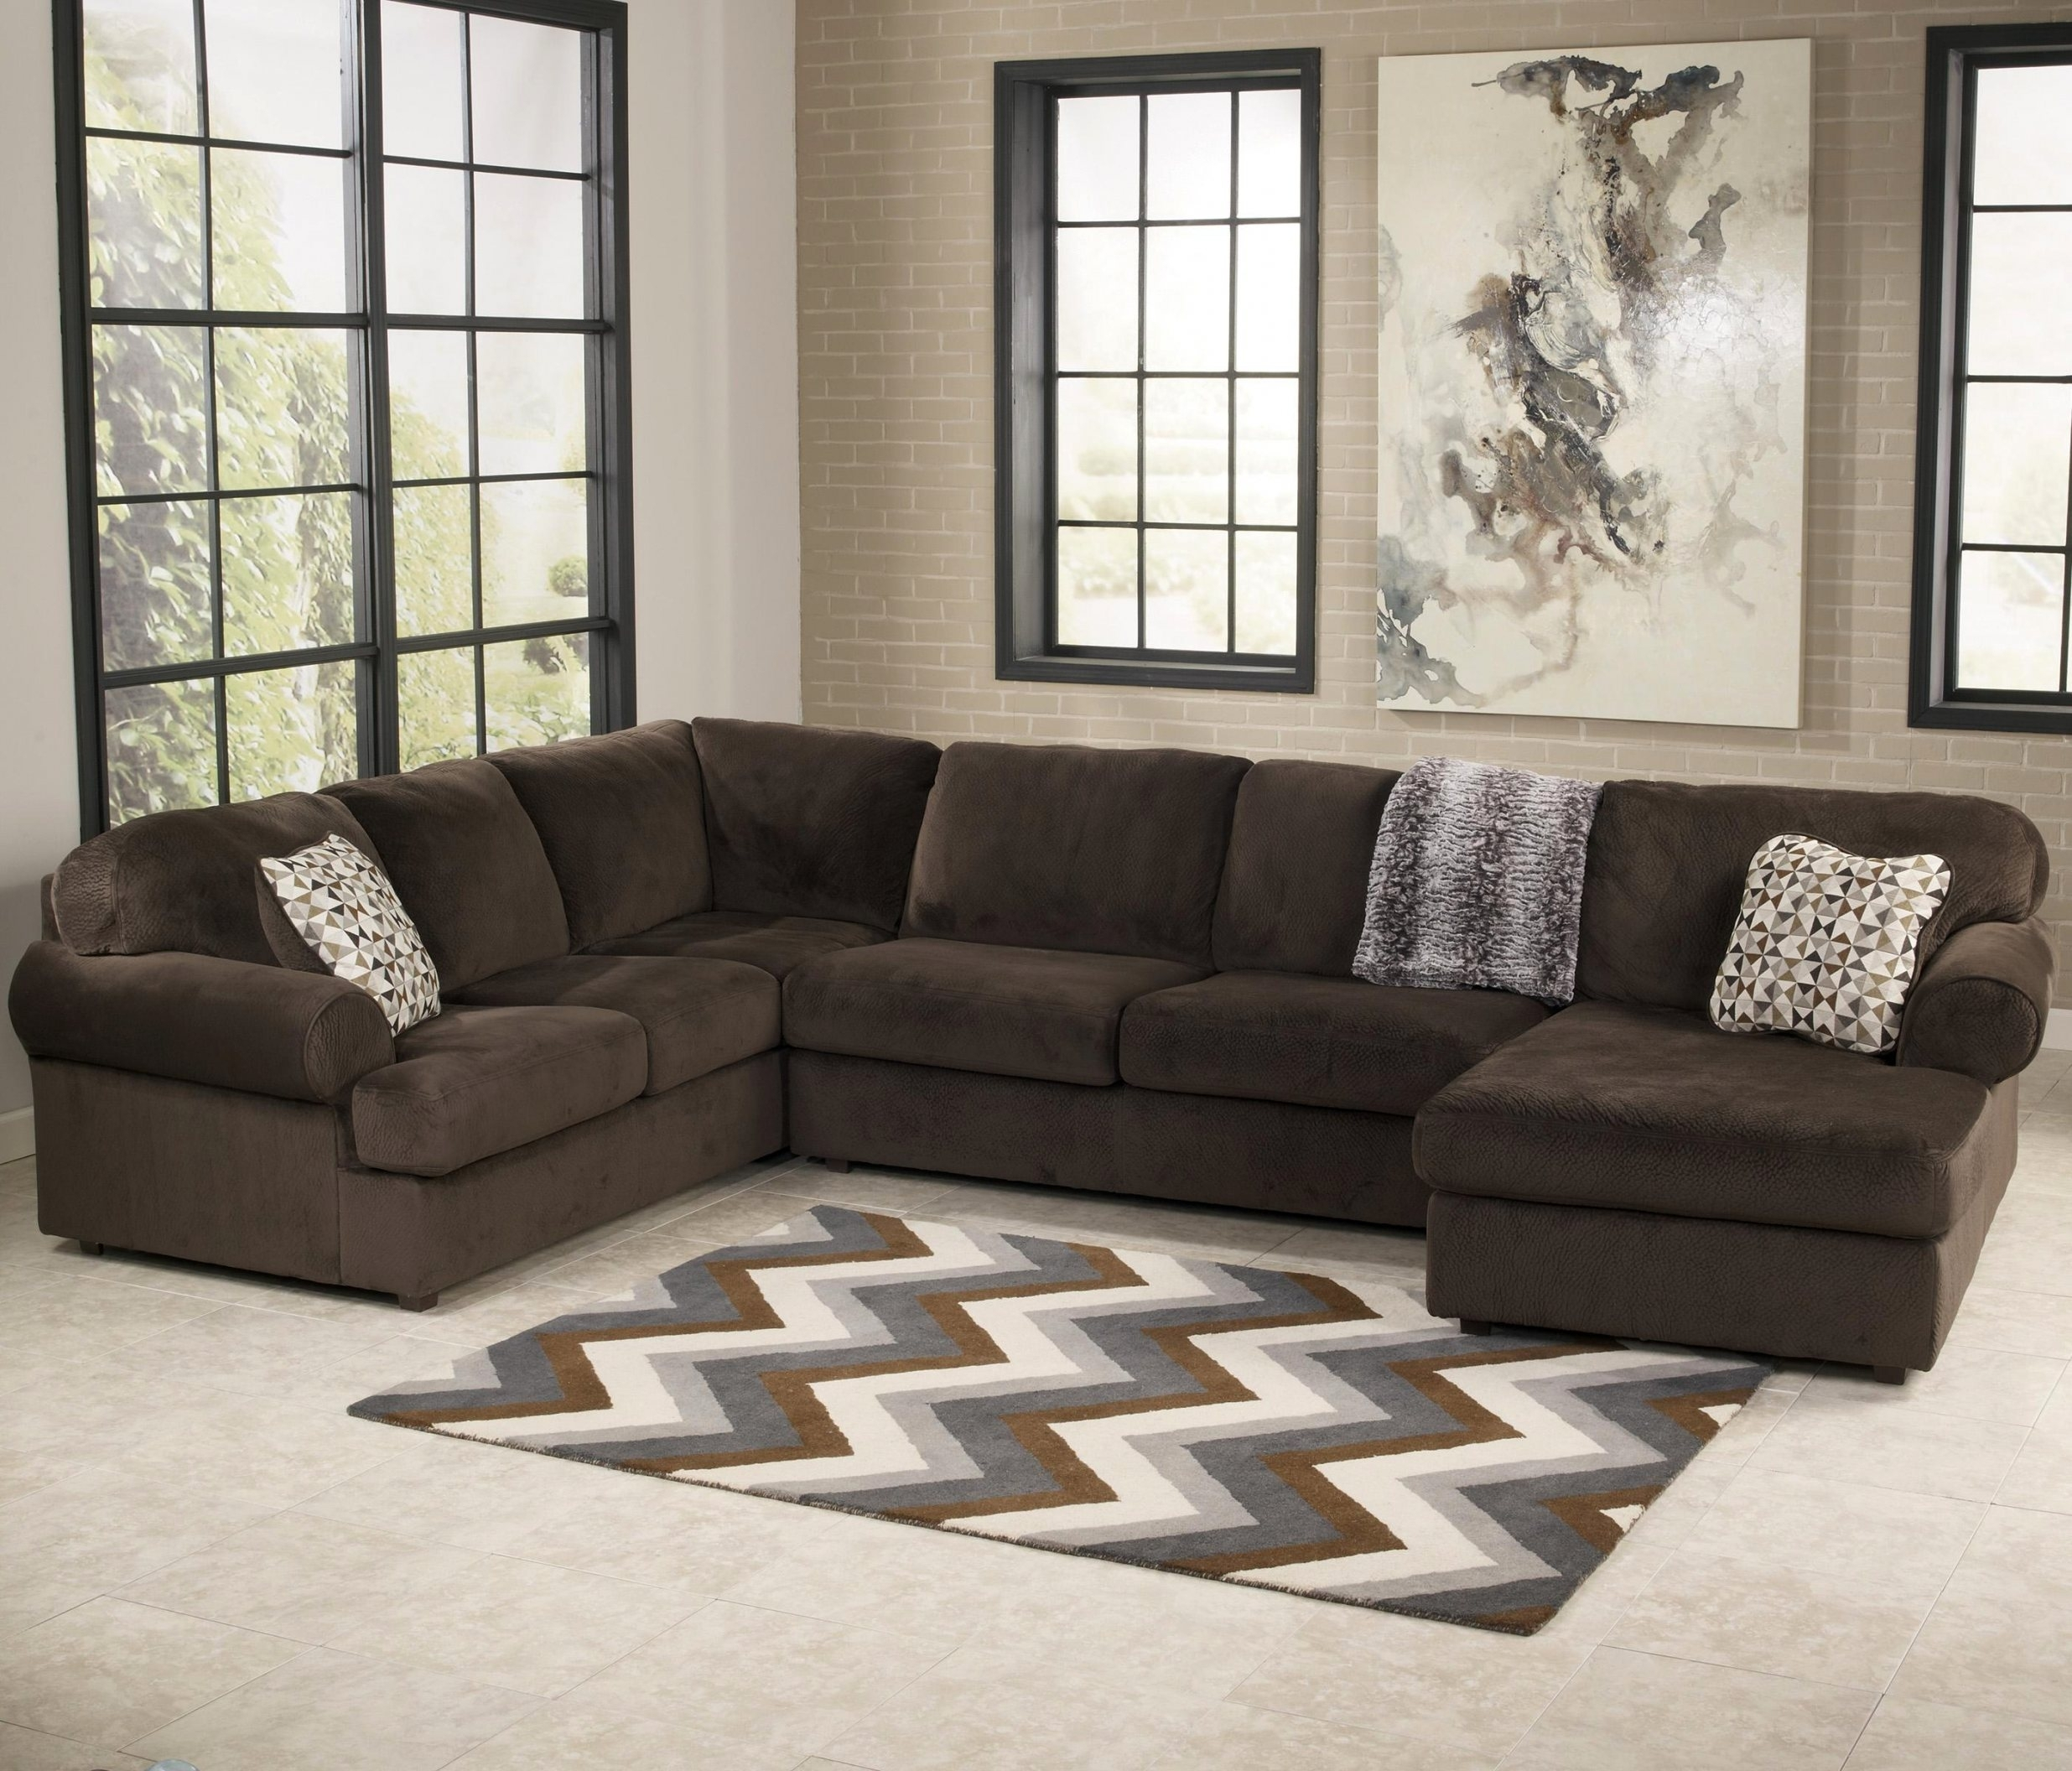 Ashley Furniture Green Bay Wi | Forever Sunset In Green Bay Wi Sectional Sofas (Image 2 of 10)